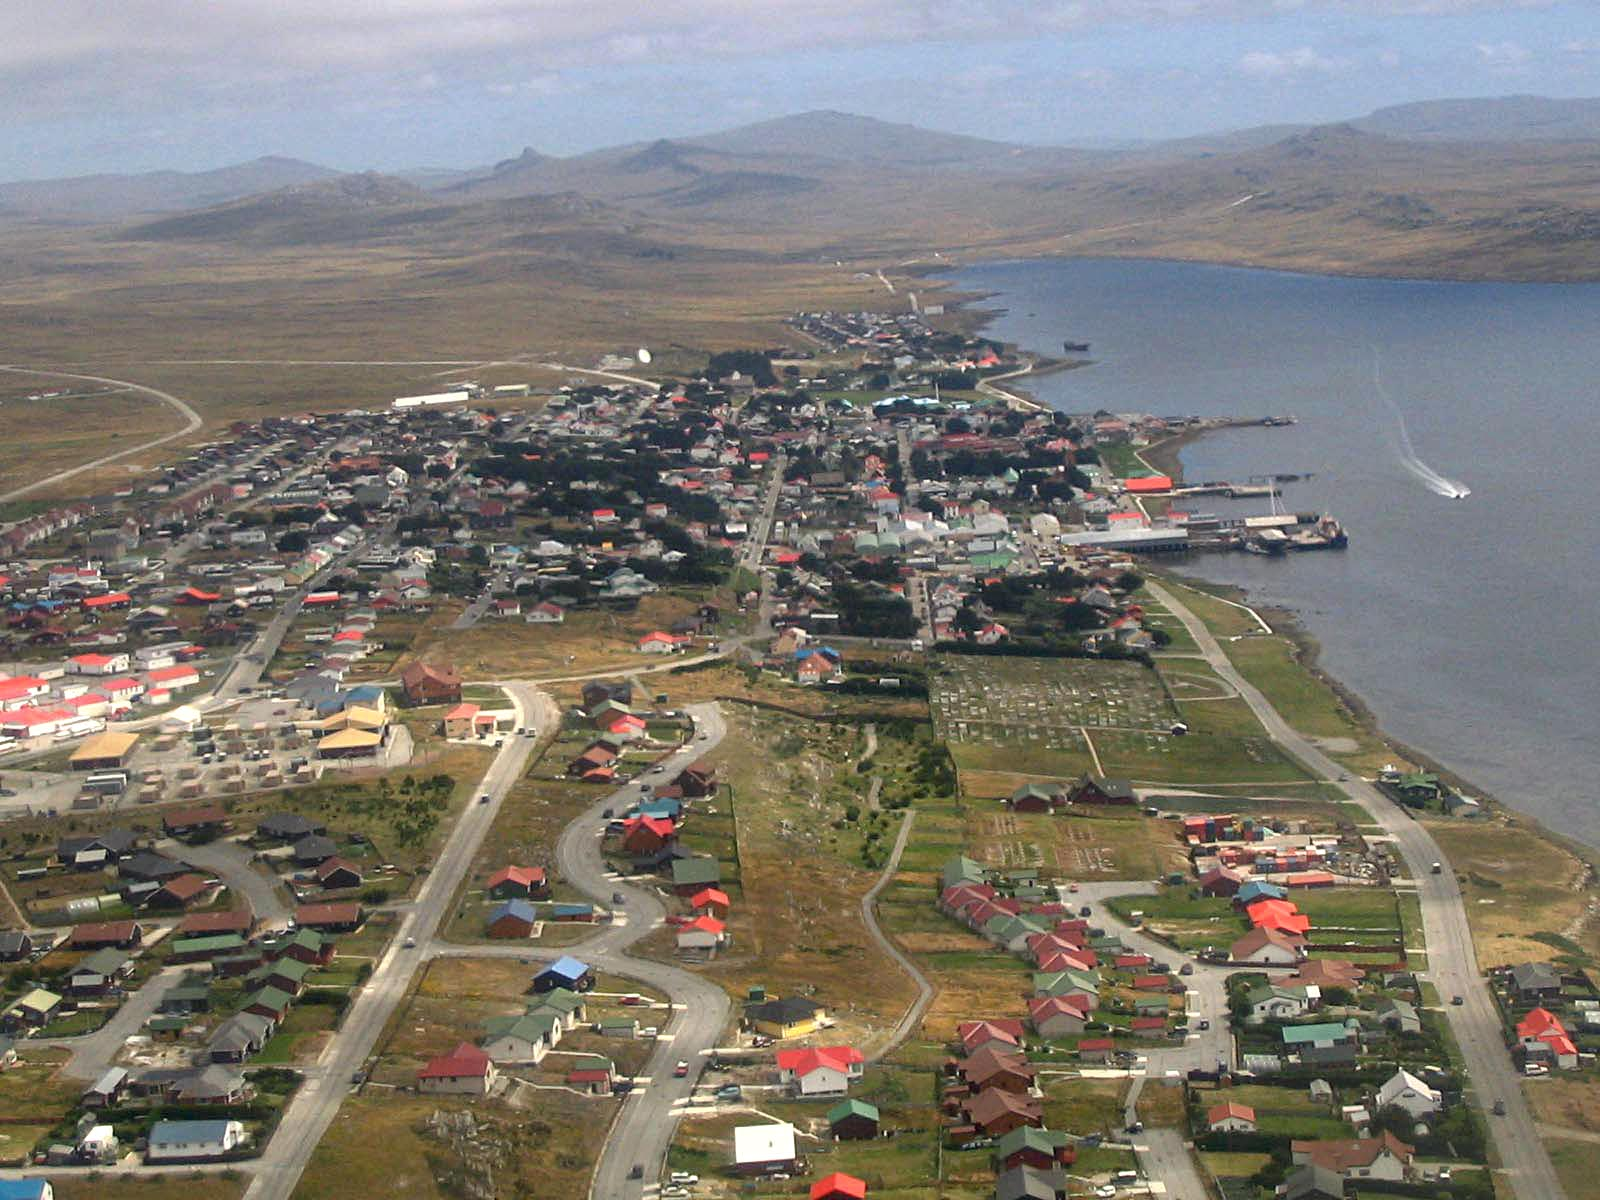 Aerial view of Stanley, Falkland Islands. Photo taken on February 7, 2005.